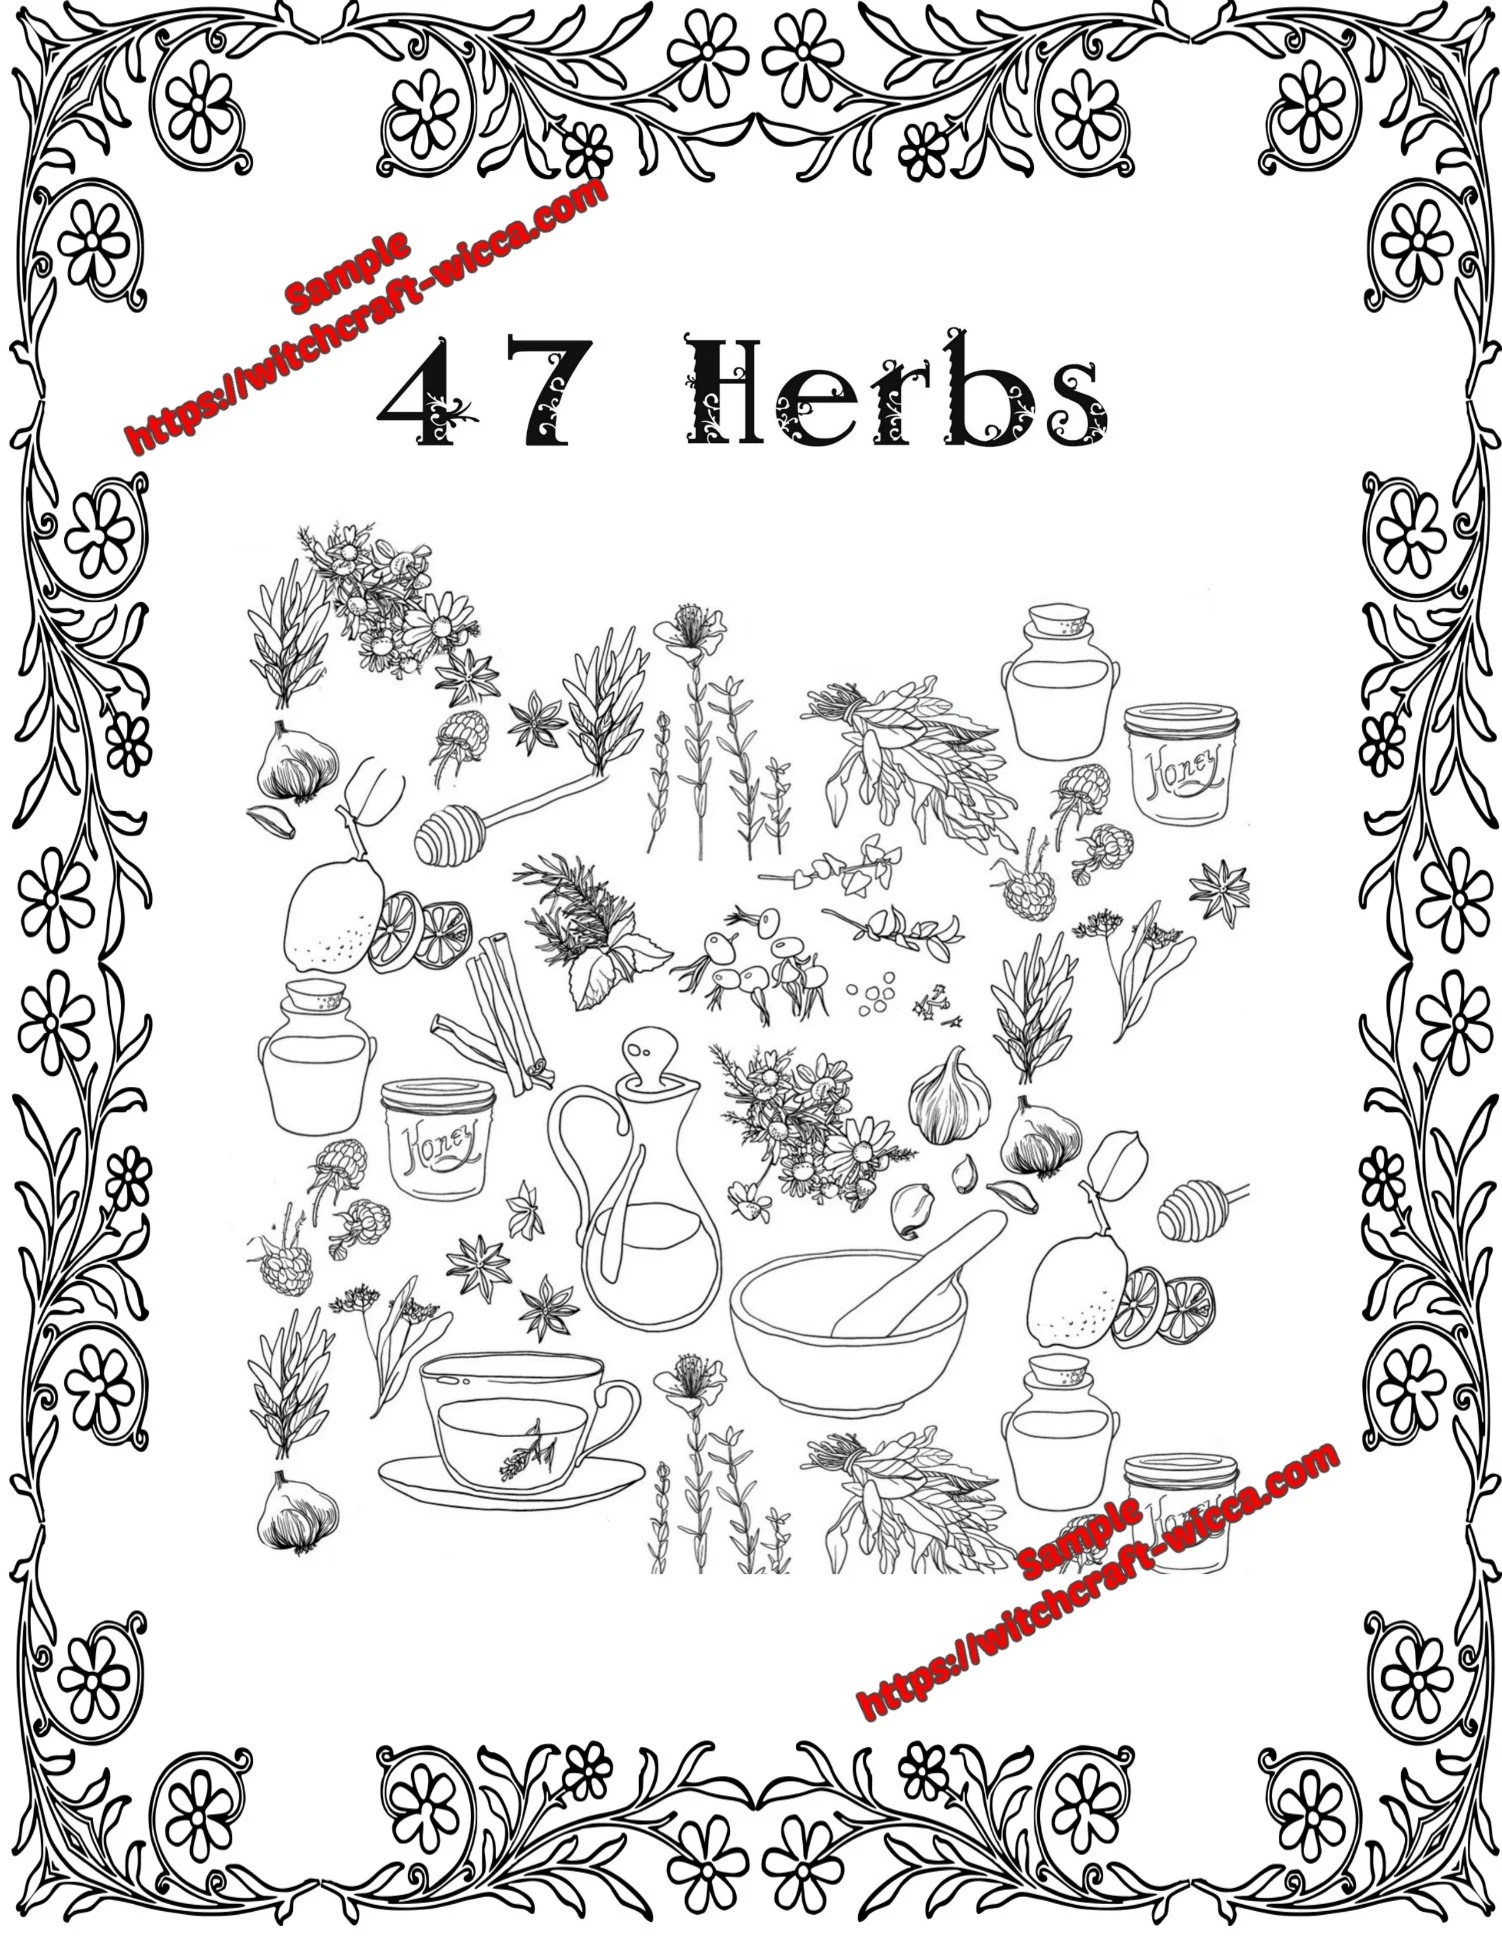 Coloring Book of Shadows 47 Herbs for Emotional and